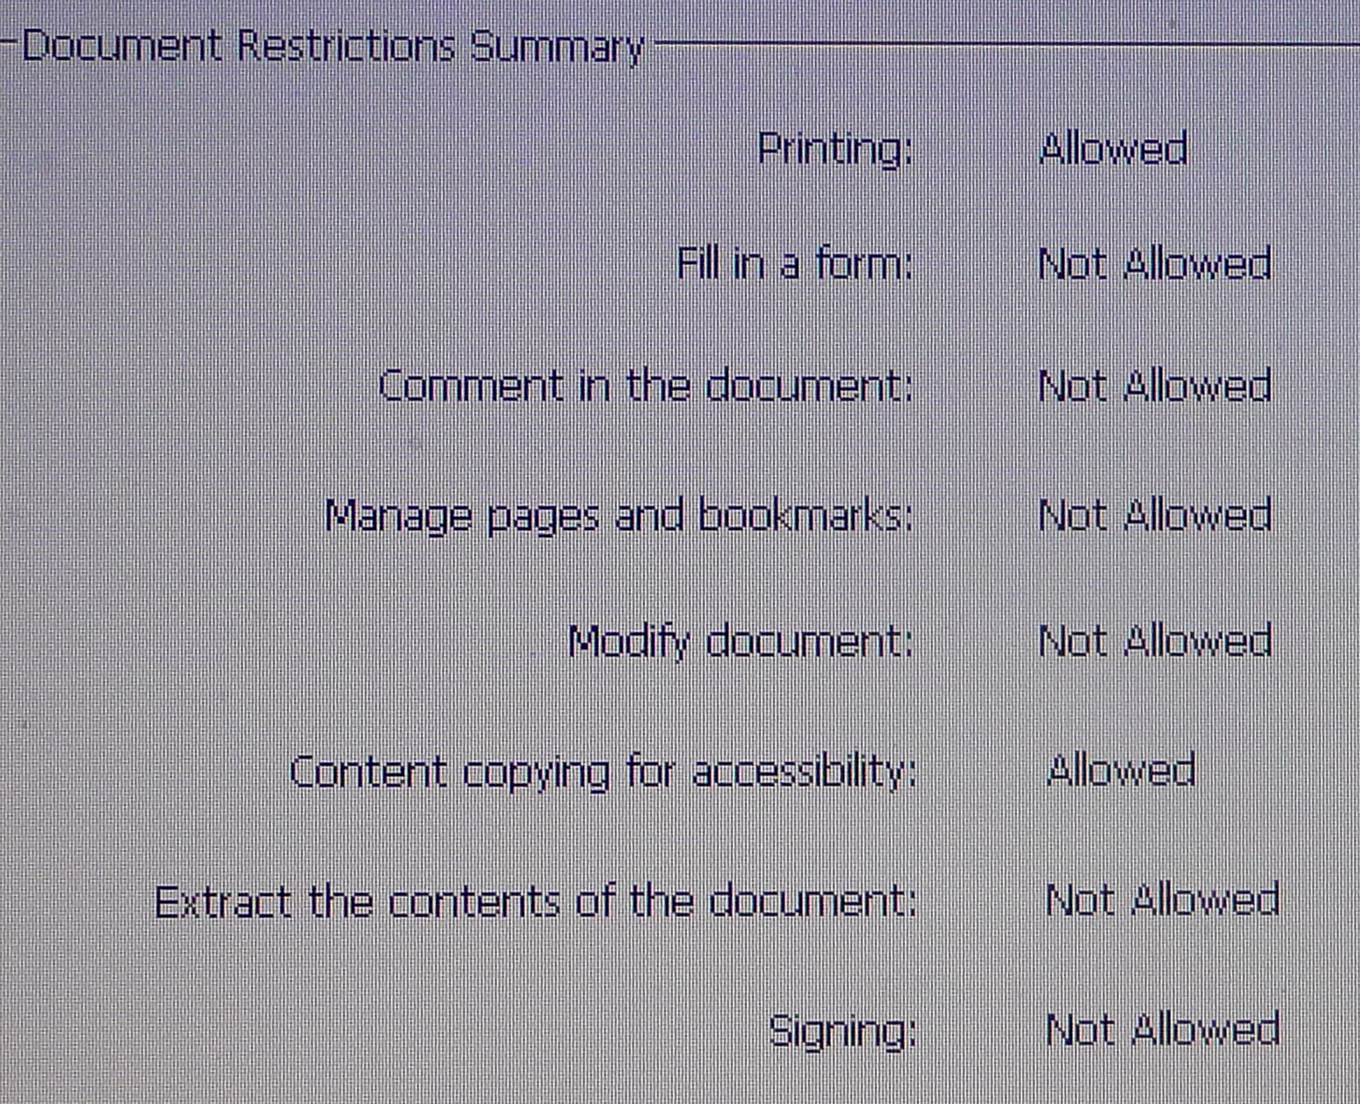 pdf security settings document assembly